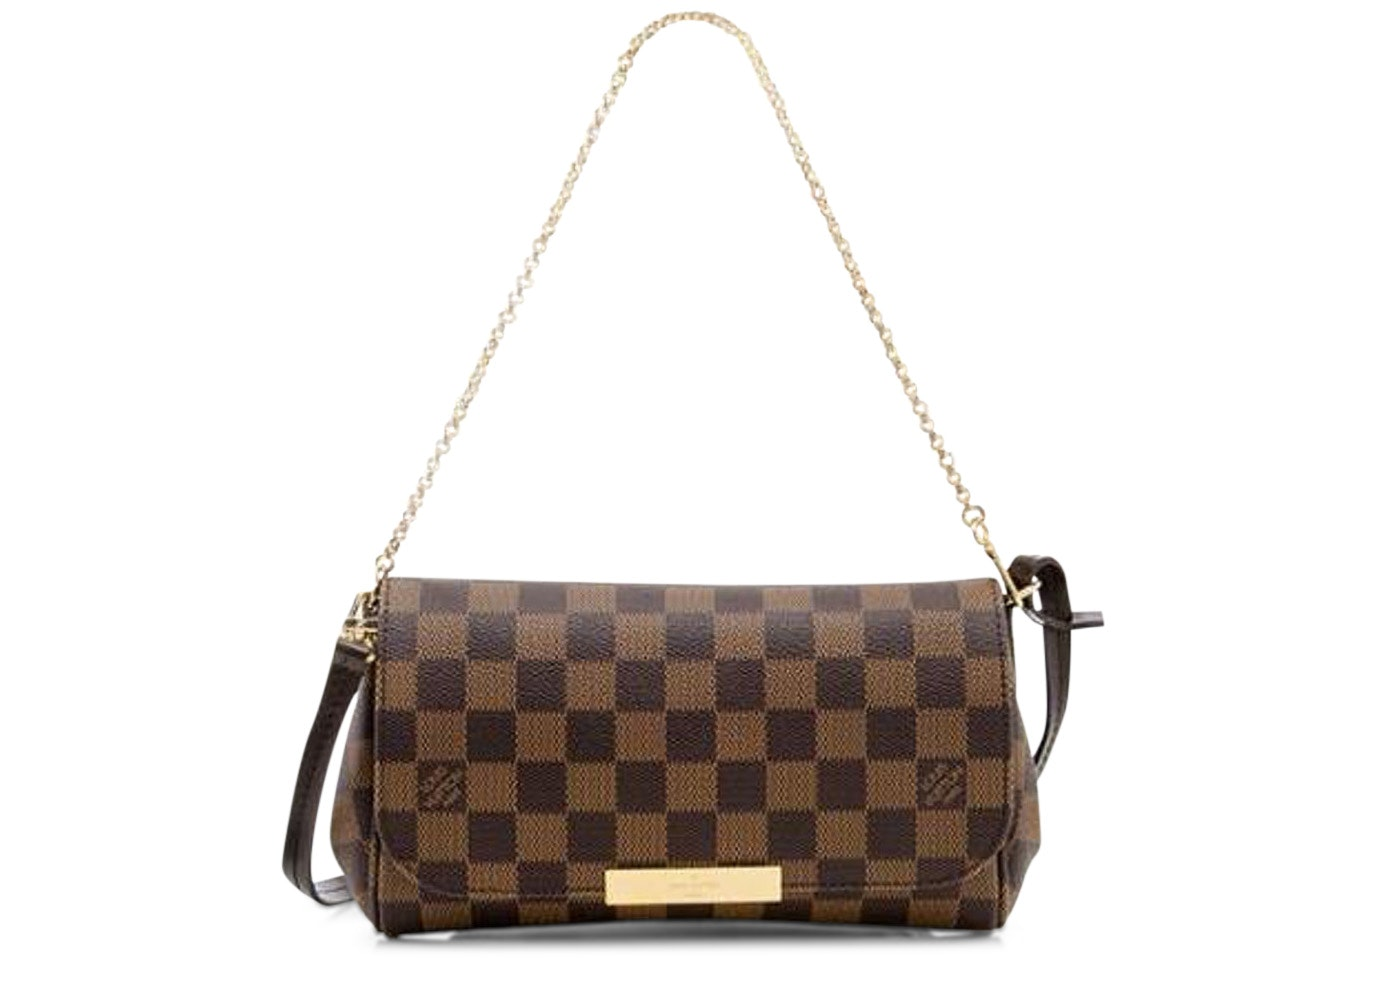 Louis Vuitton Favorite Damier Ebene PM Brown